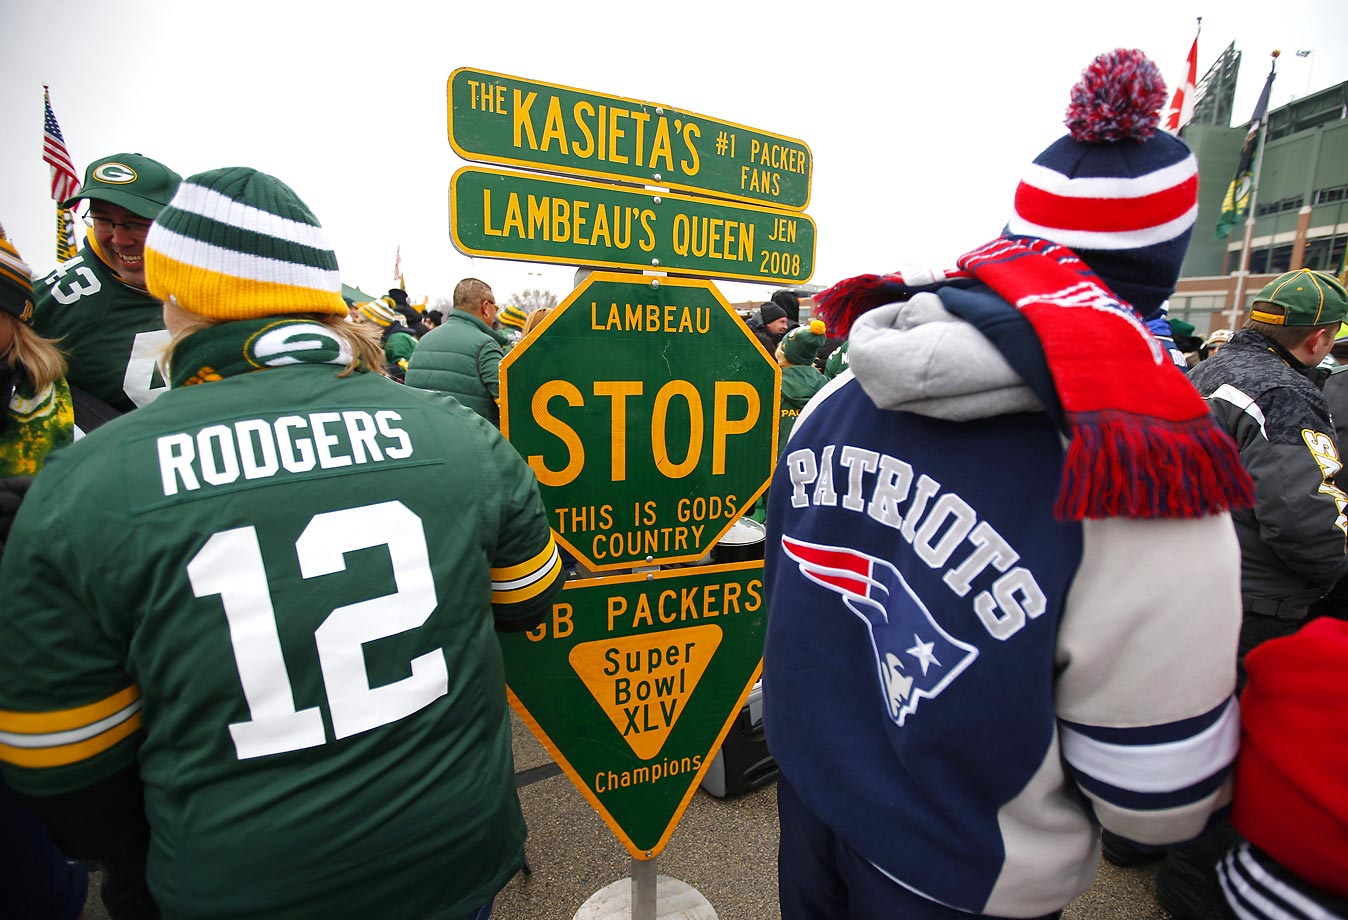 Fans tailgate in the parking lot of Lambeau Field before the Green Bay Packers play the New England Patriots.